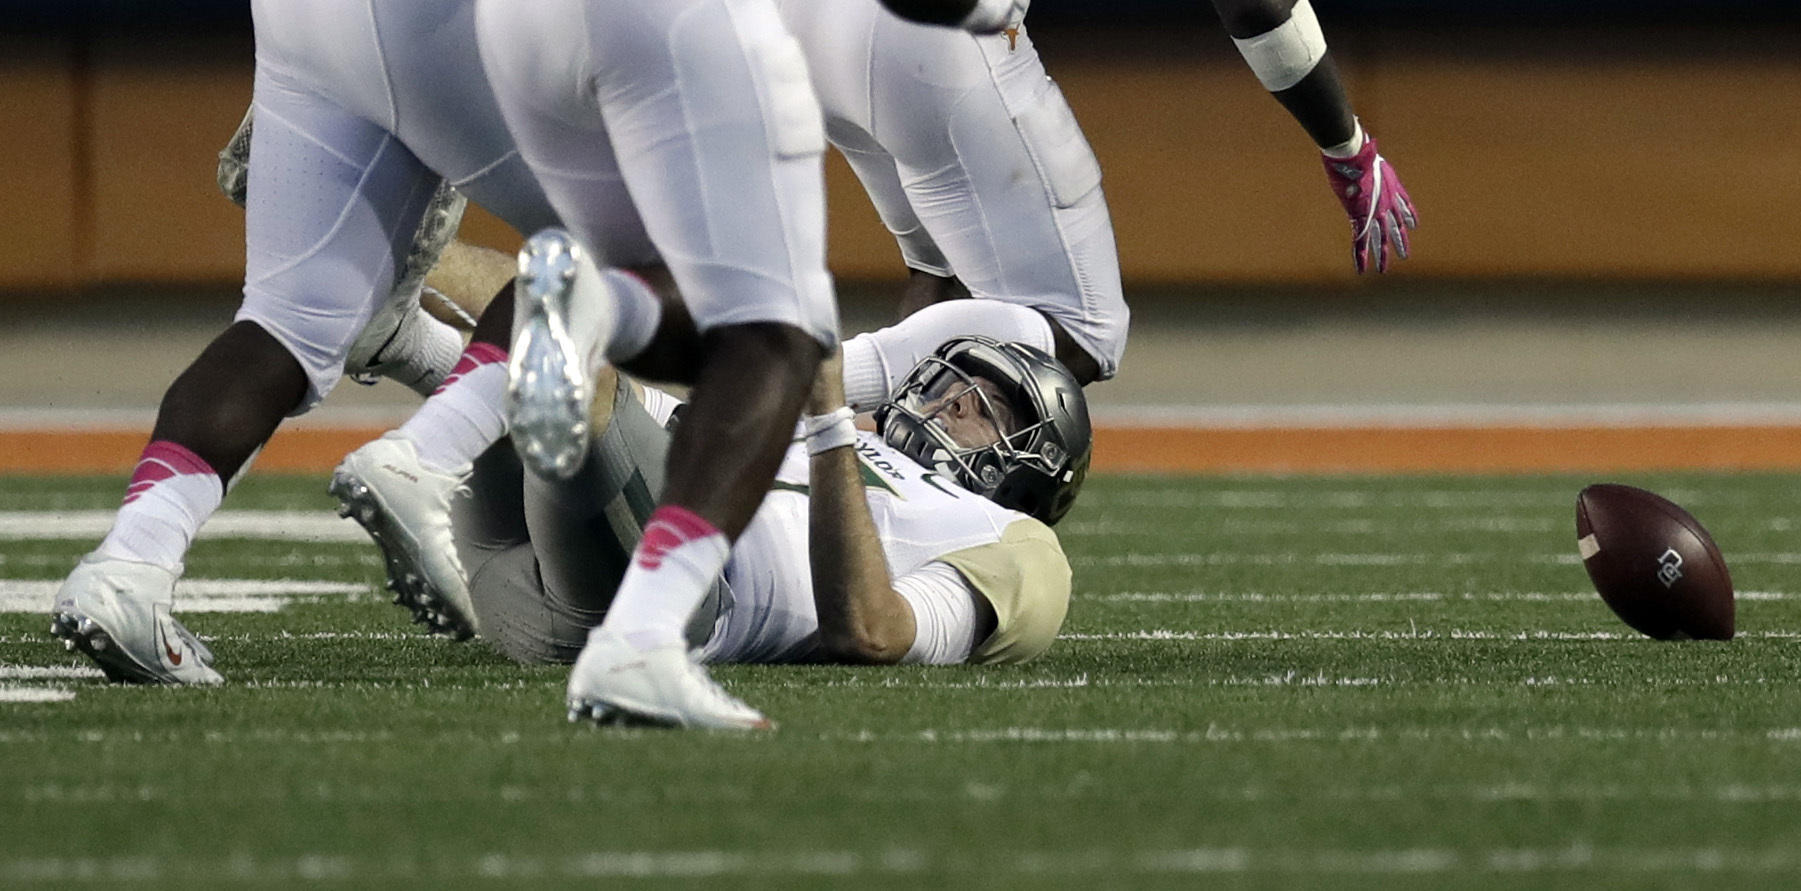 FILE - In this Oct. 29, 2016, file photo, Baylor quarterback Seth Russell (17) falls to the turf after he was hit by Texas linebacker Malik Jefferson (46) as he tired to pass during the final seconds of the second half on a NCAA college football game, in